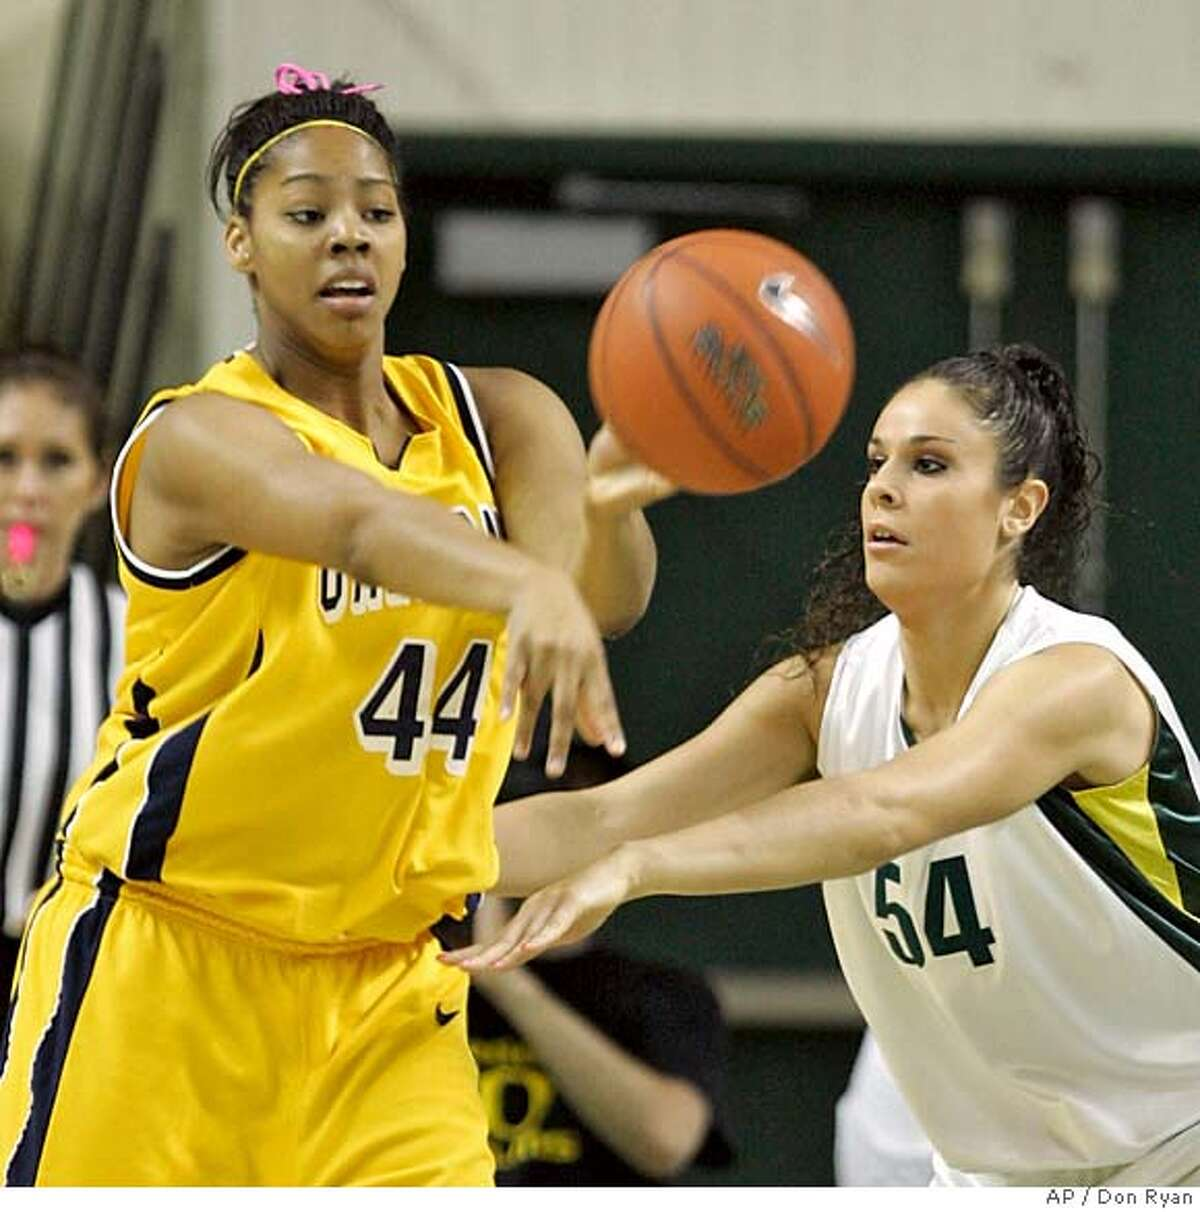 California forward Ashley Walker, left, passes off against Oregon forward Nicole Canepa during first half women's college basketball action in Eugene, Ore., Saturday, Feb. 9, 2008. (AP Photo/Don Ryan)